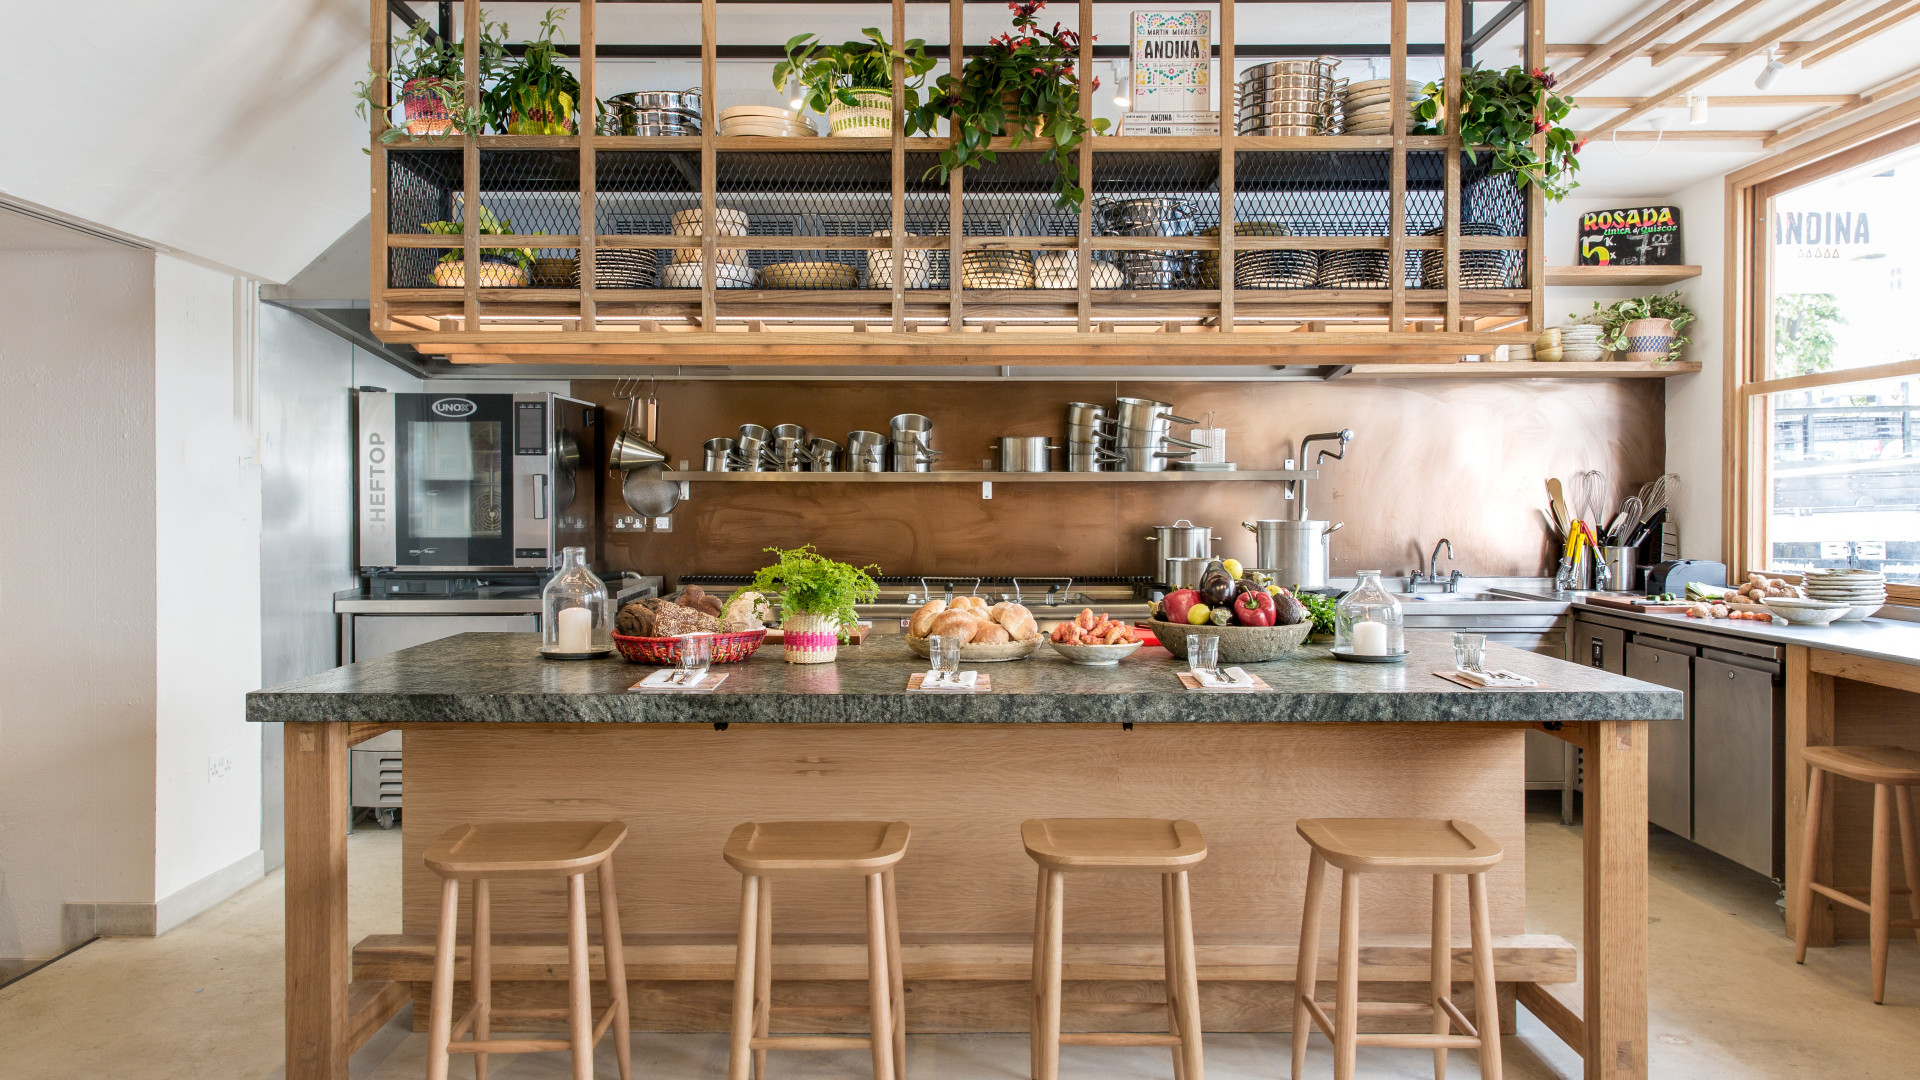 The open kitchen at Andina Notting Hill